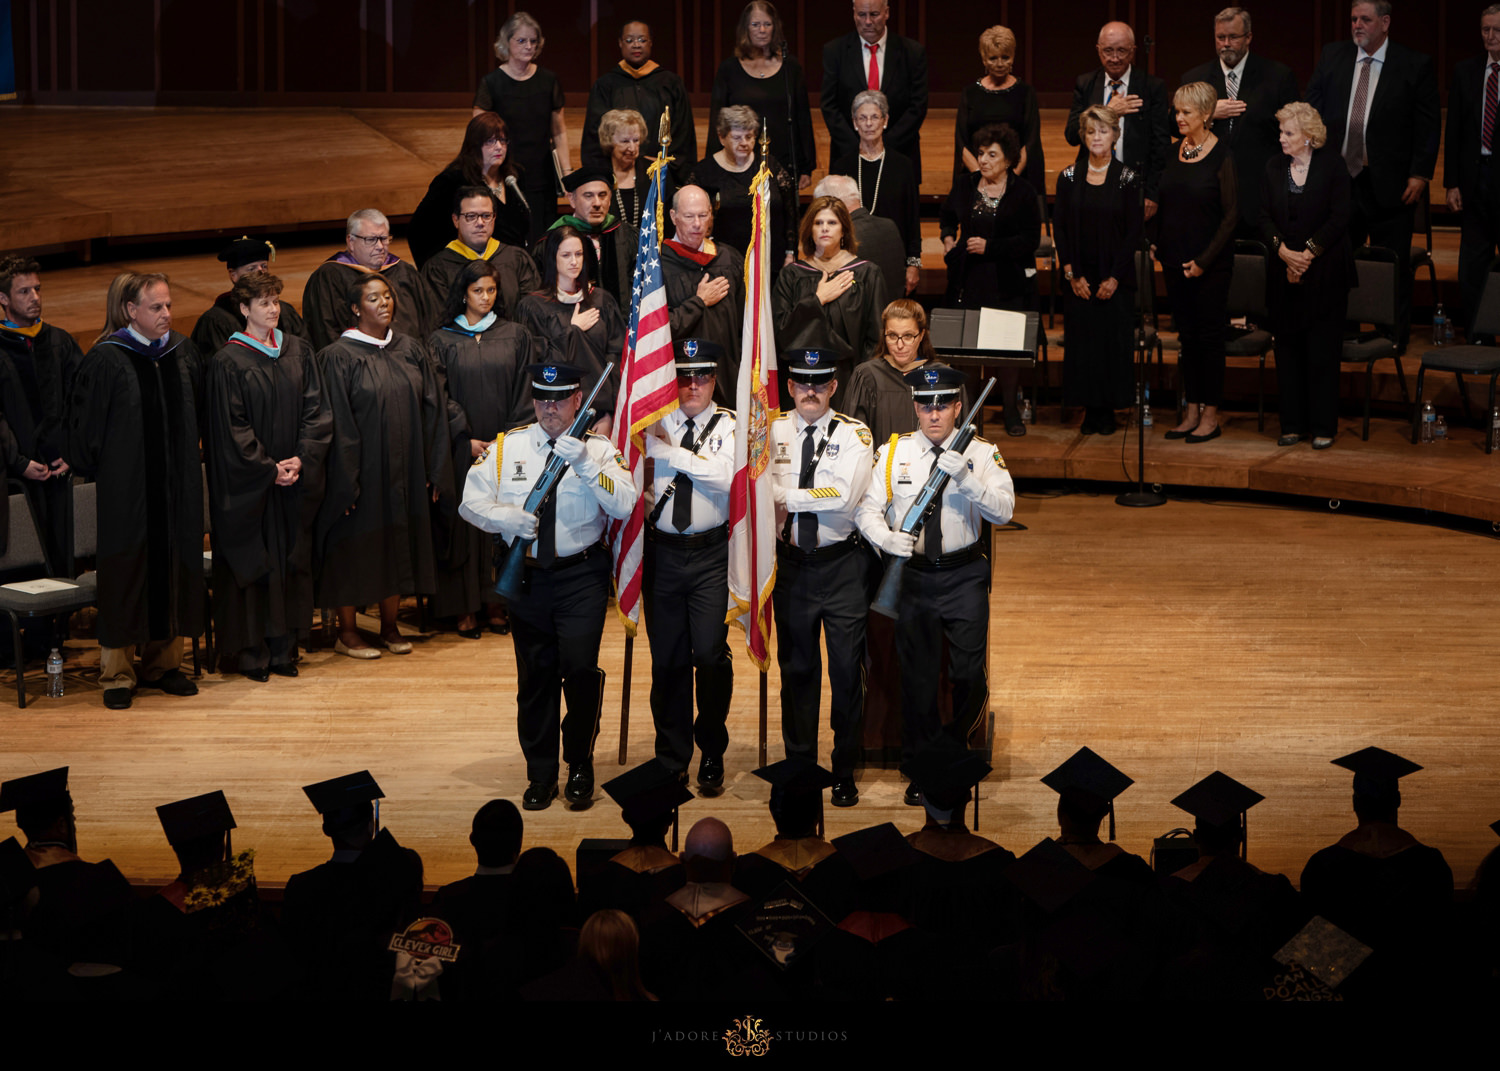 Color guard performs opening ceremony at Keiser Universities graduation ceremony